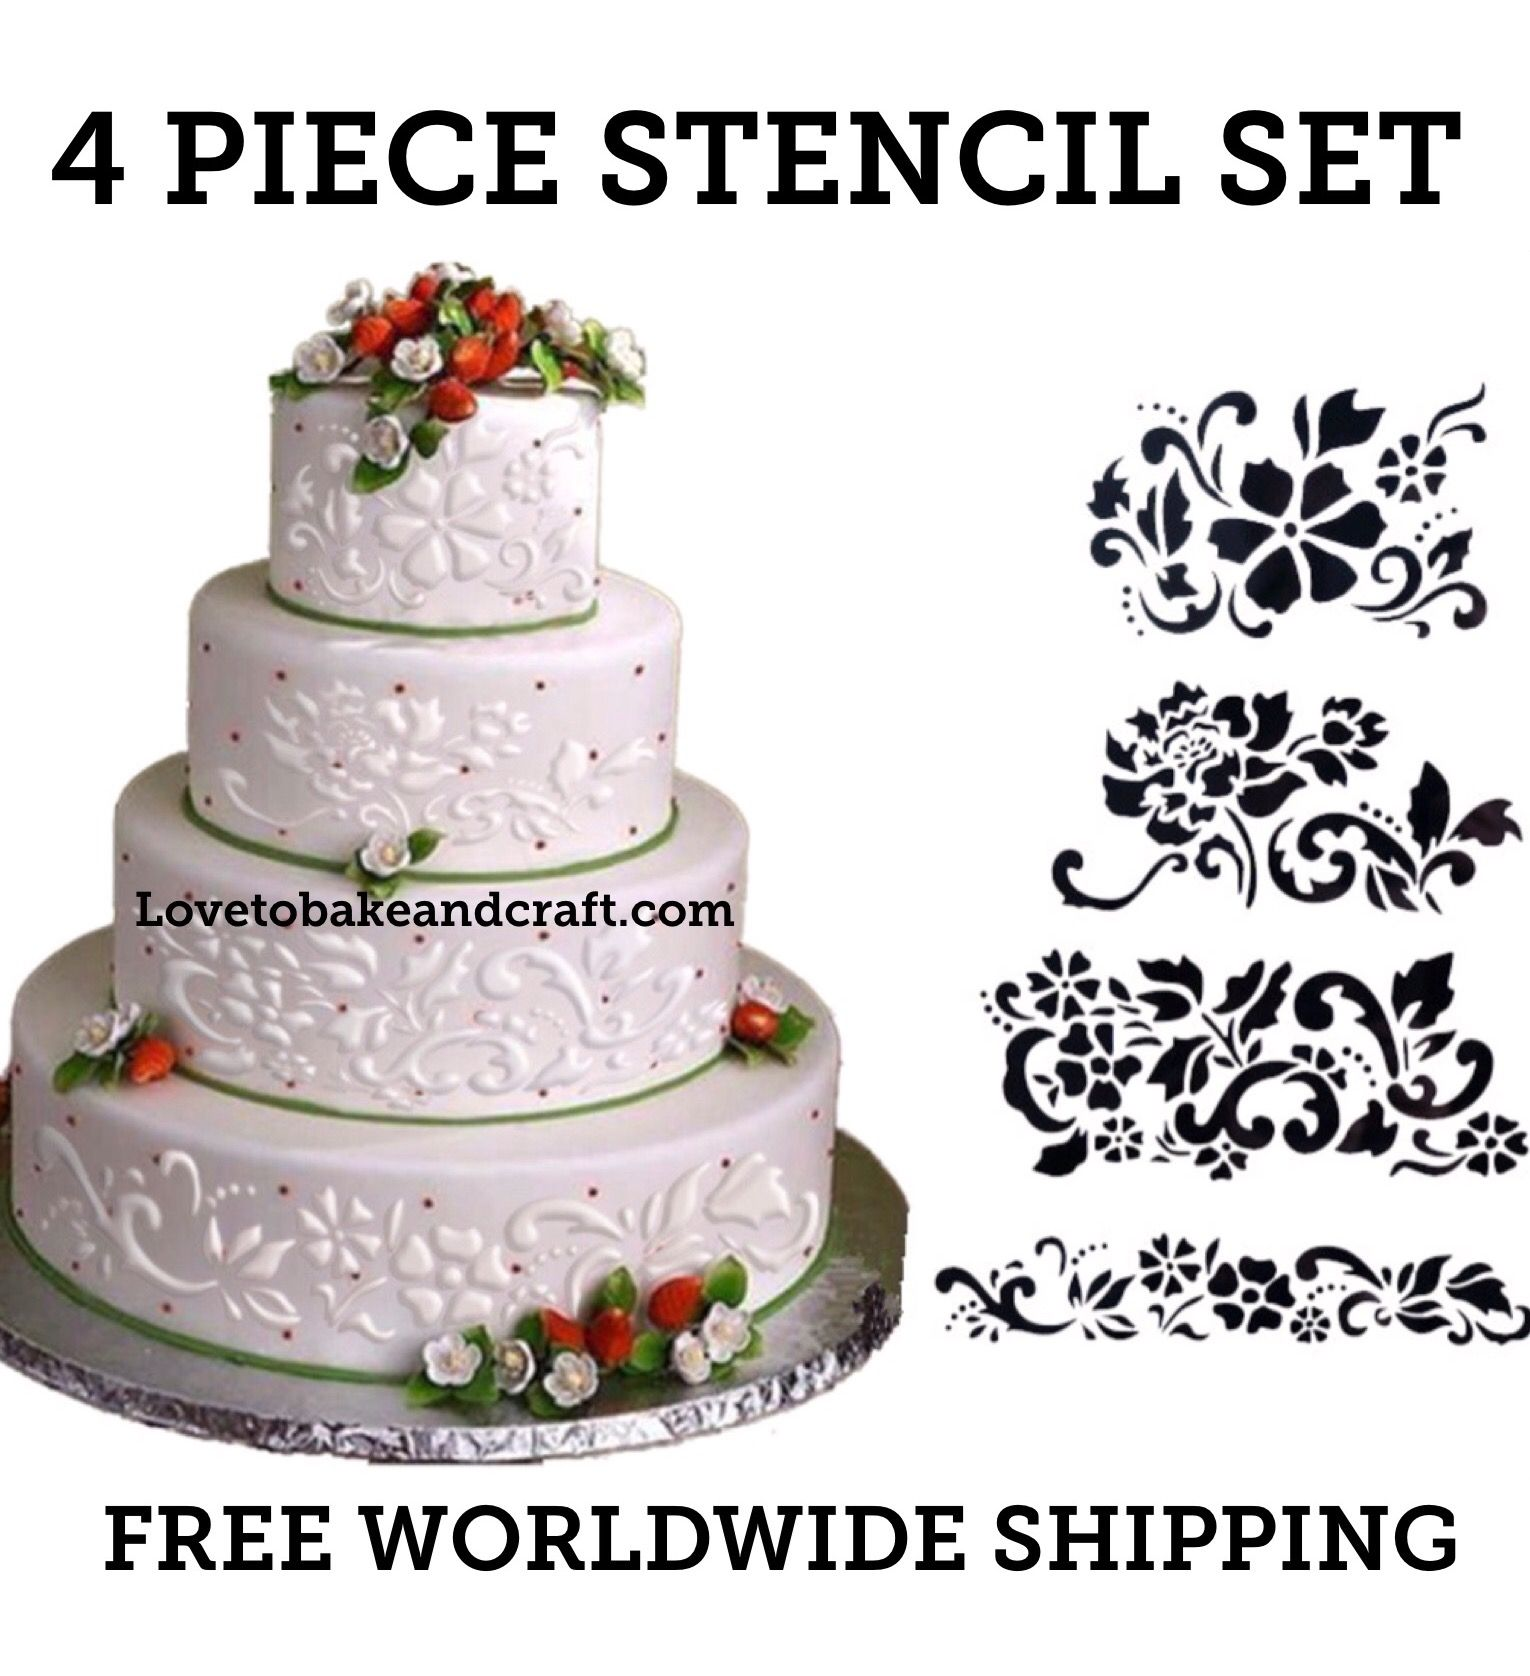 stenciled wedding cake design floral cake stencil 4 set flower cake stencil 20521